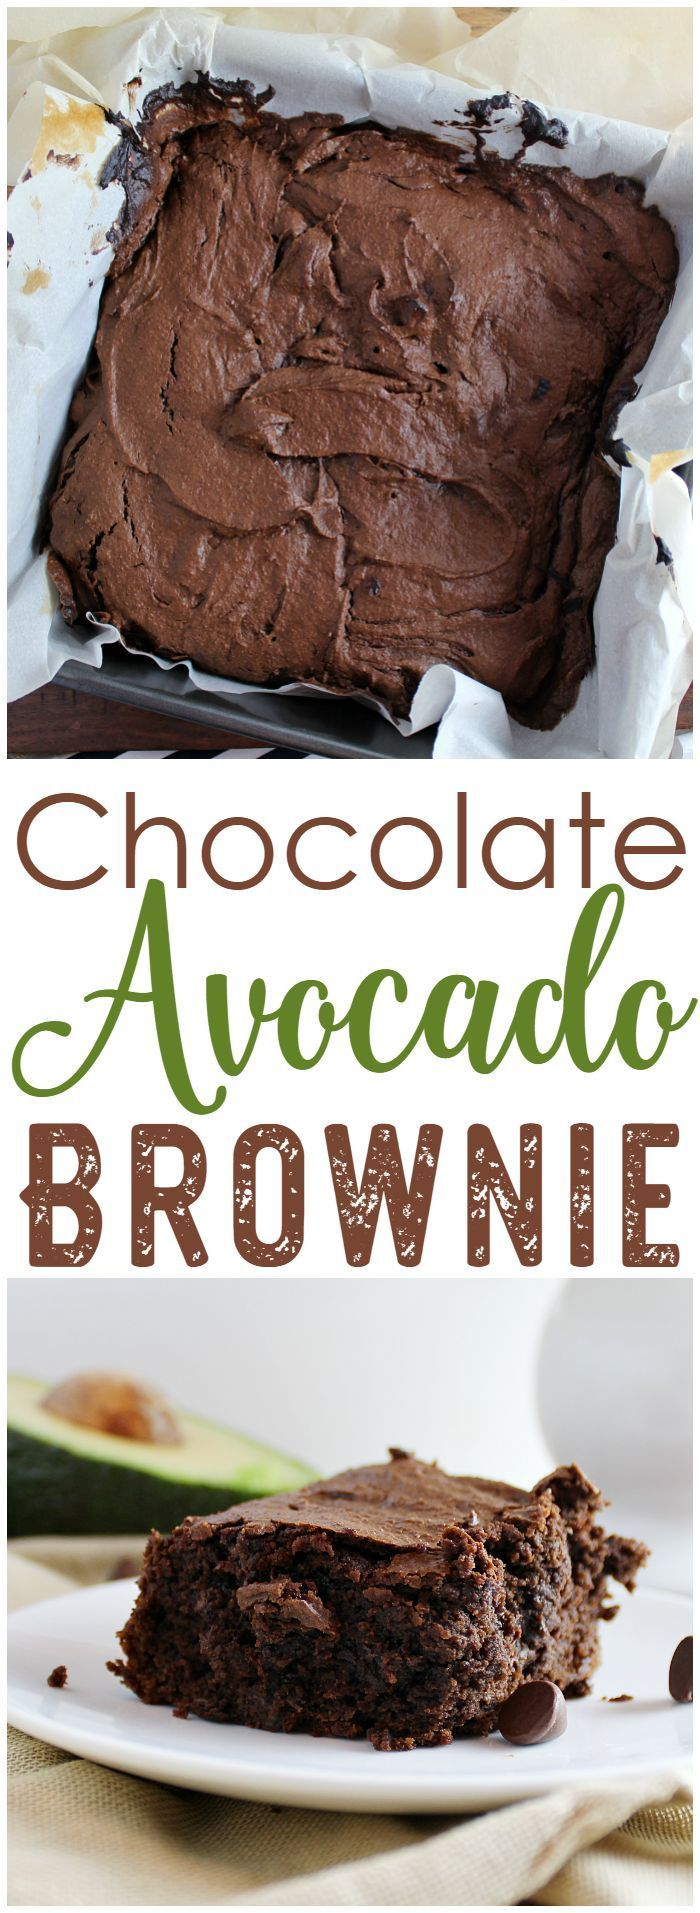 The 25+ best Craving chocolate ideas on Pinterest | Almonds ...